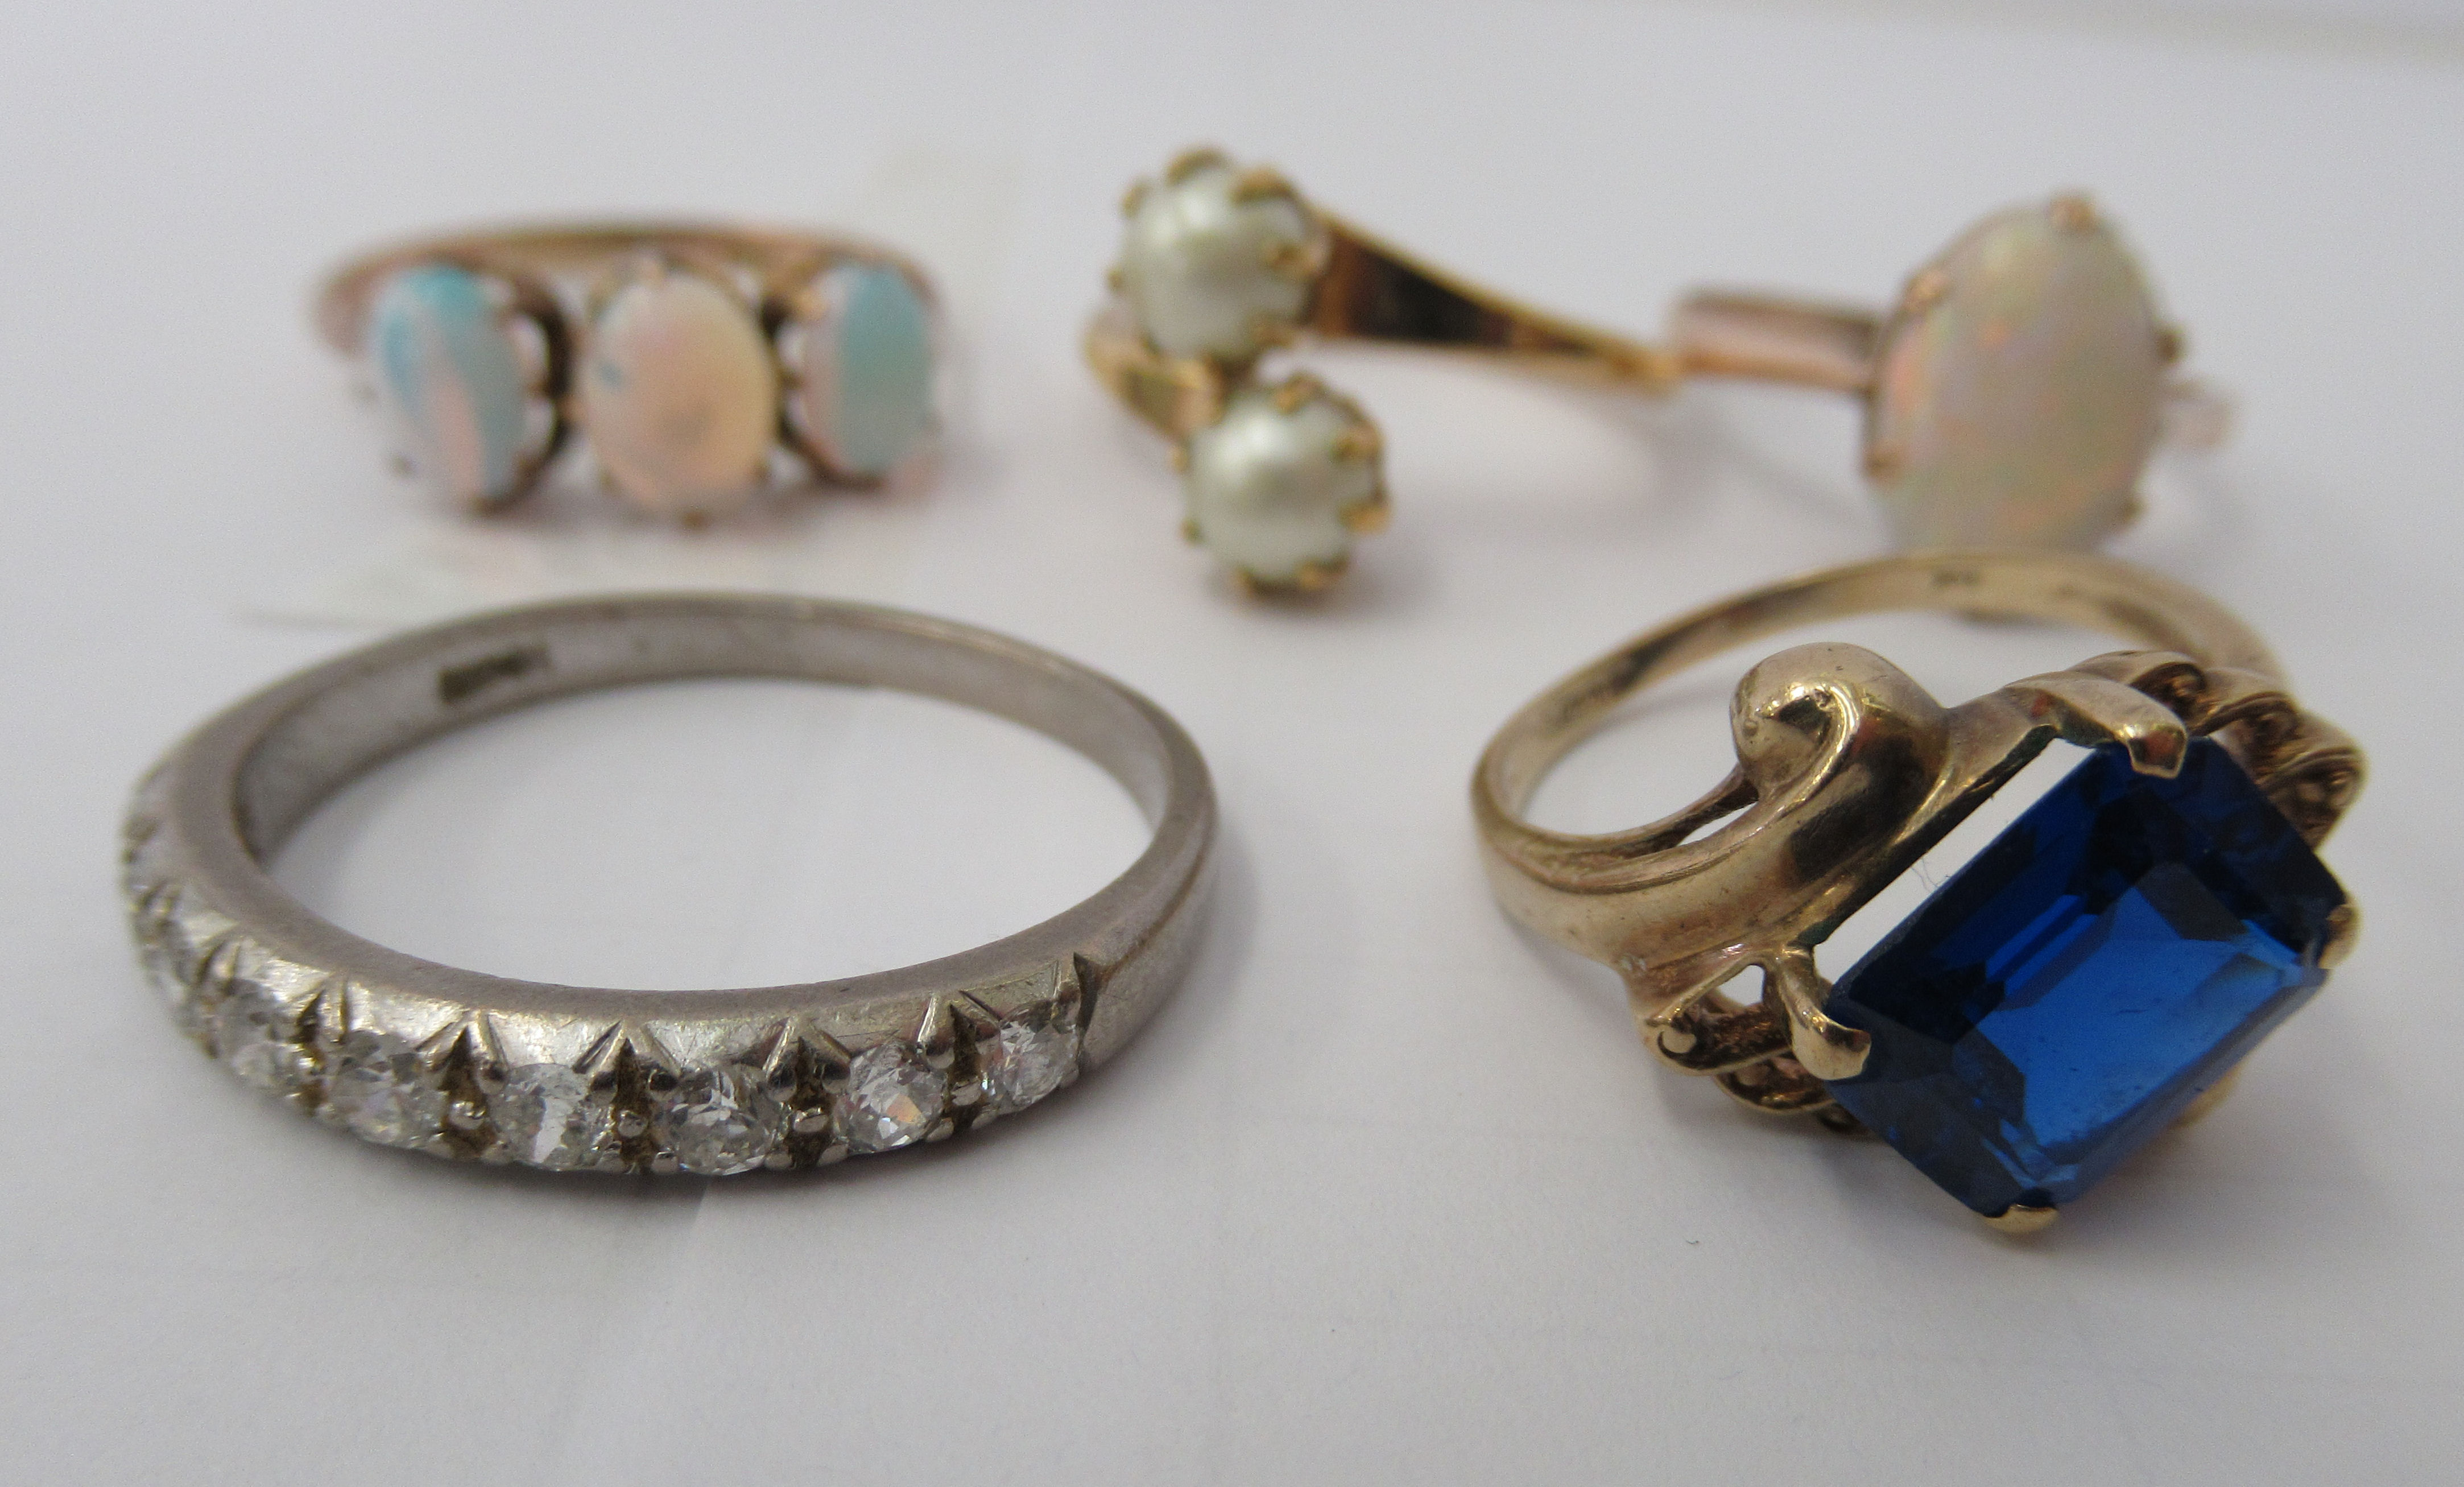 Three yellow metal rings and a white metal coloured ring, set with simulated pearls, opals and other